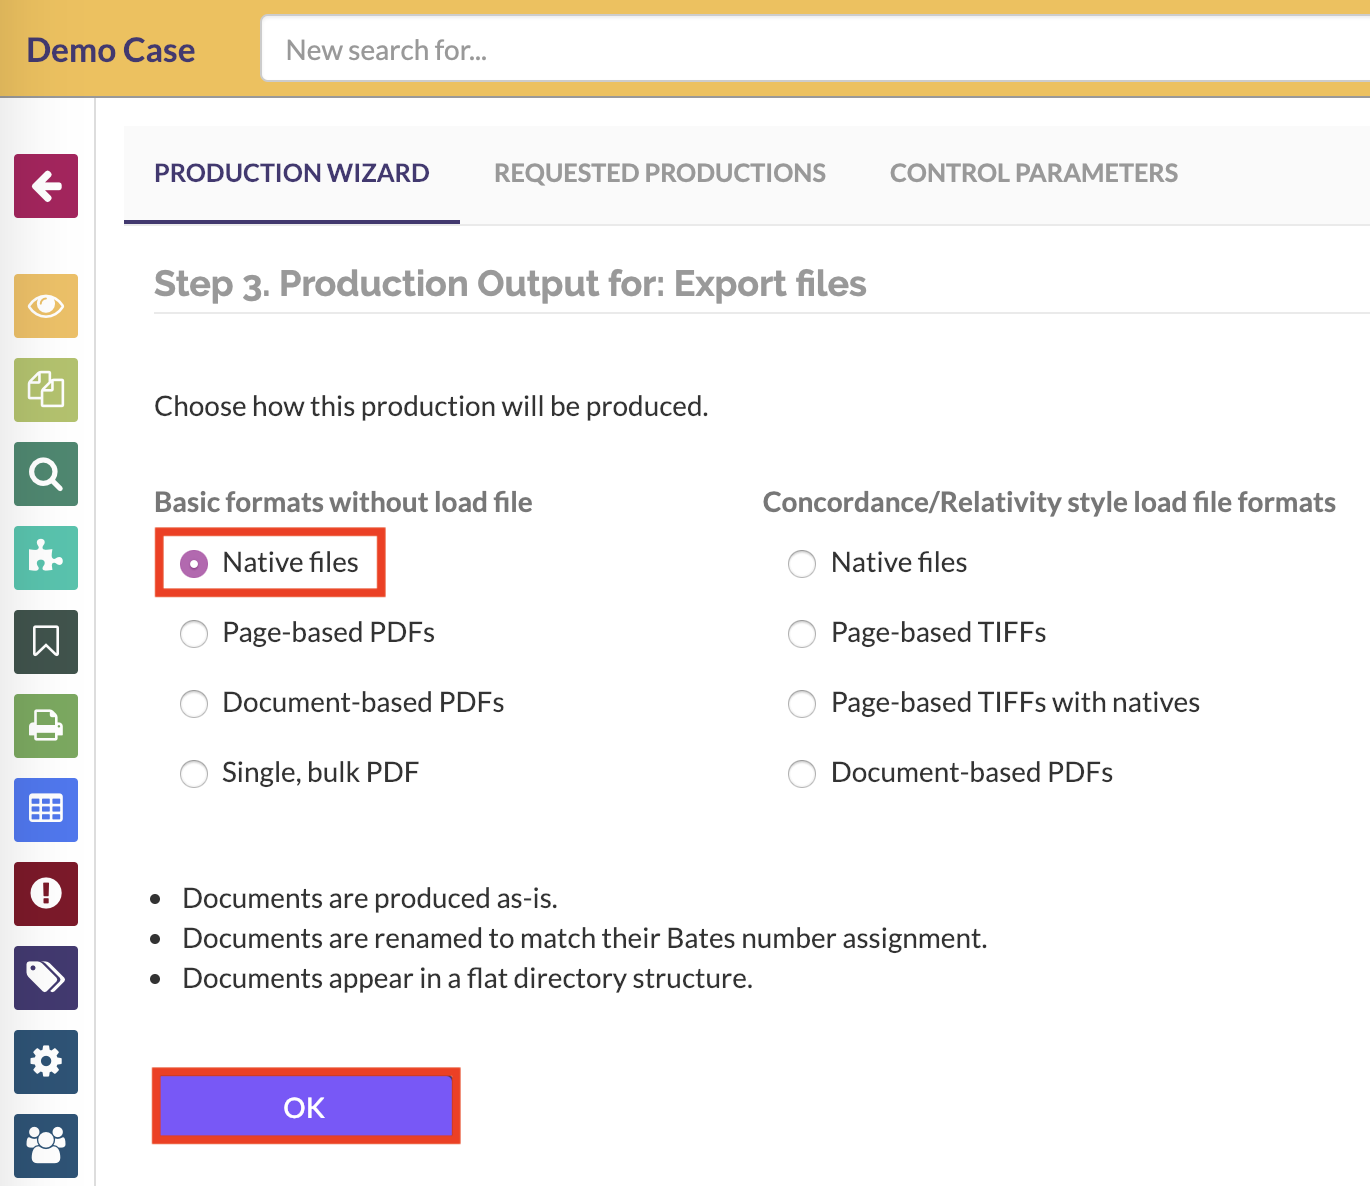 Select a native option to produce your files in their native formats